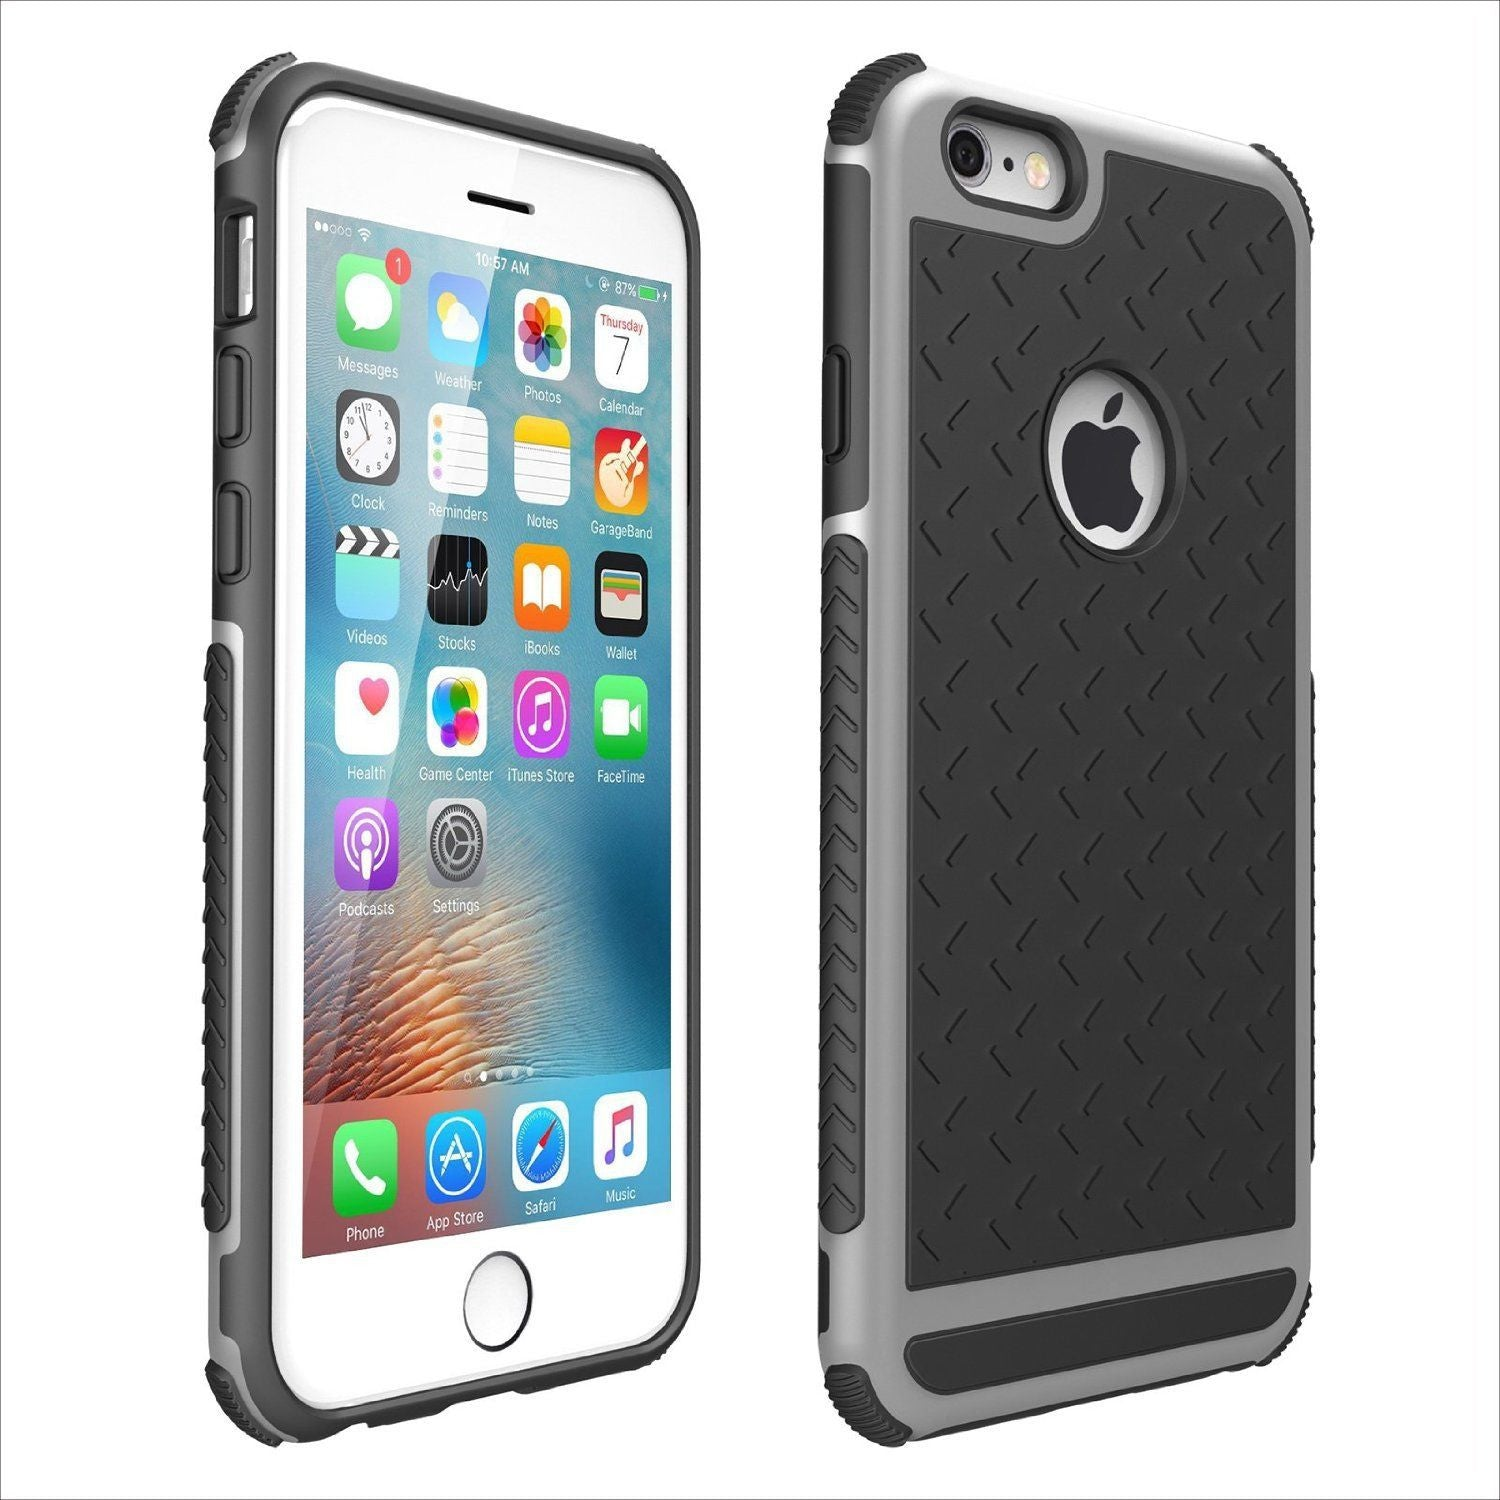 hot sale online 40c3a 80fe6 Shockproof Rubber Hybrid Fashion Hard Case Thin Cover For Apple iPhone 6 6S  Plus